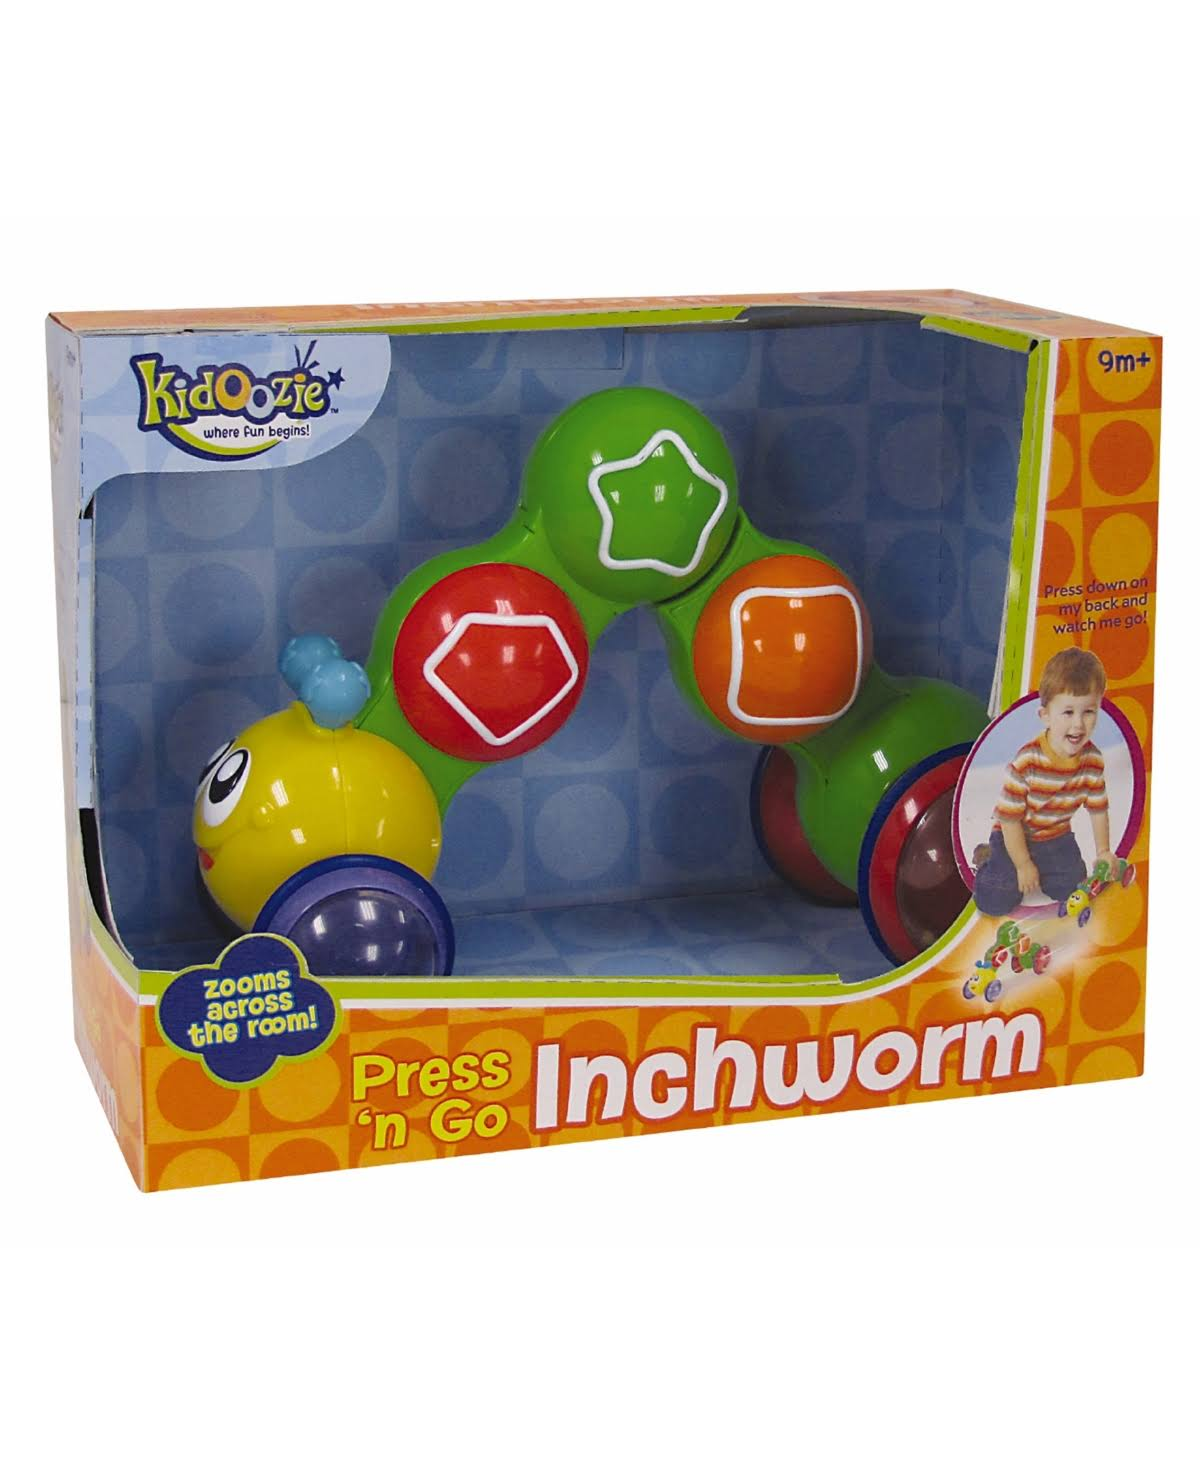 Kidoozie Press N Go Inchworm Toy